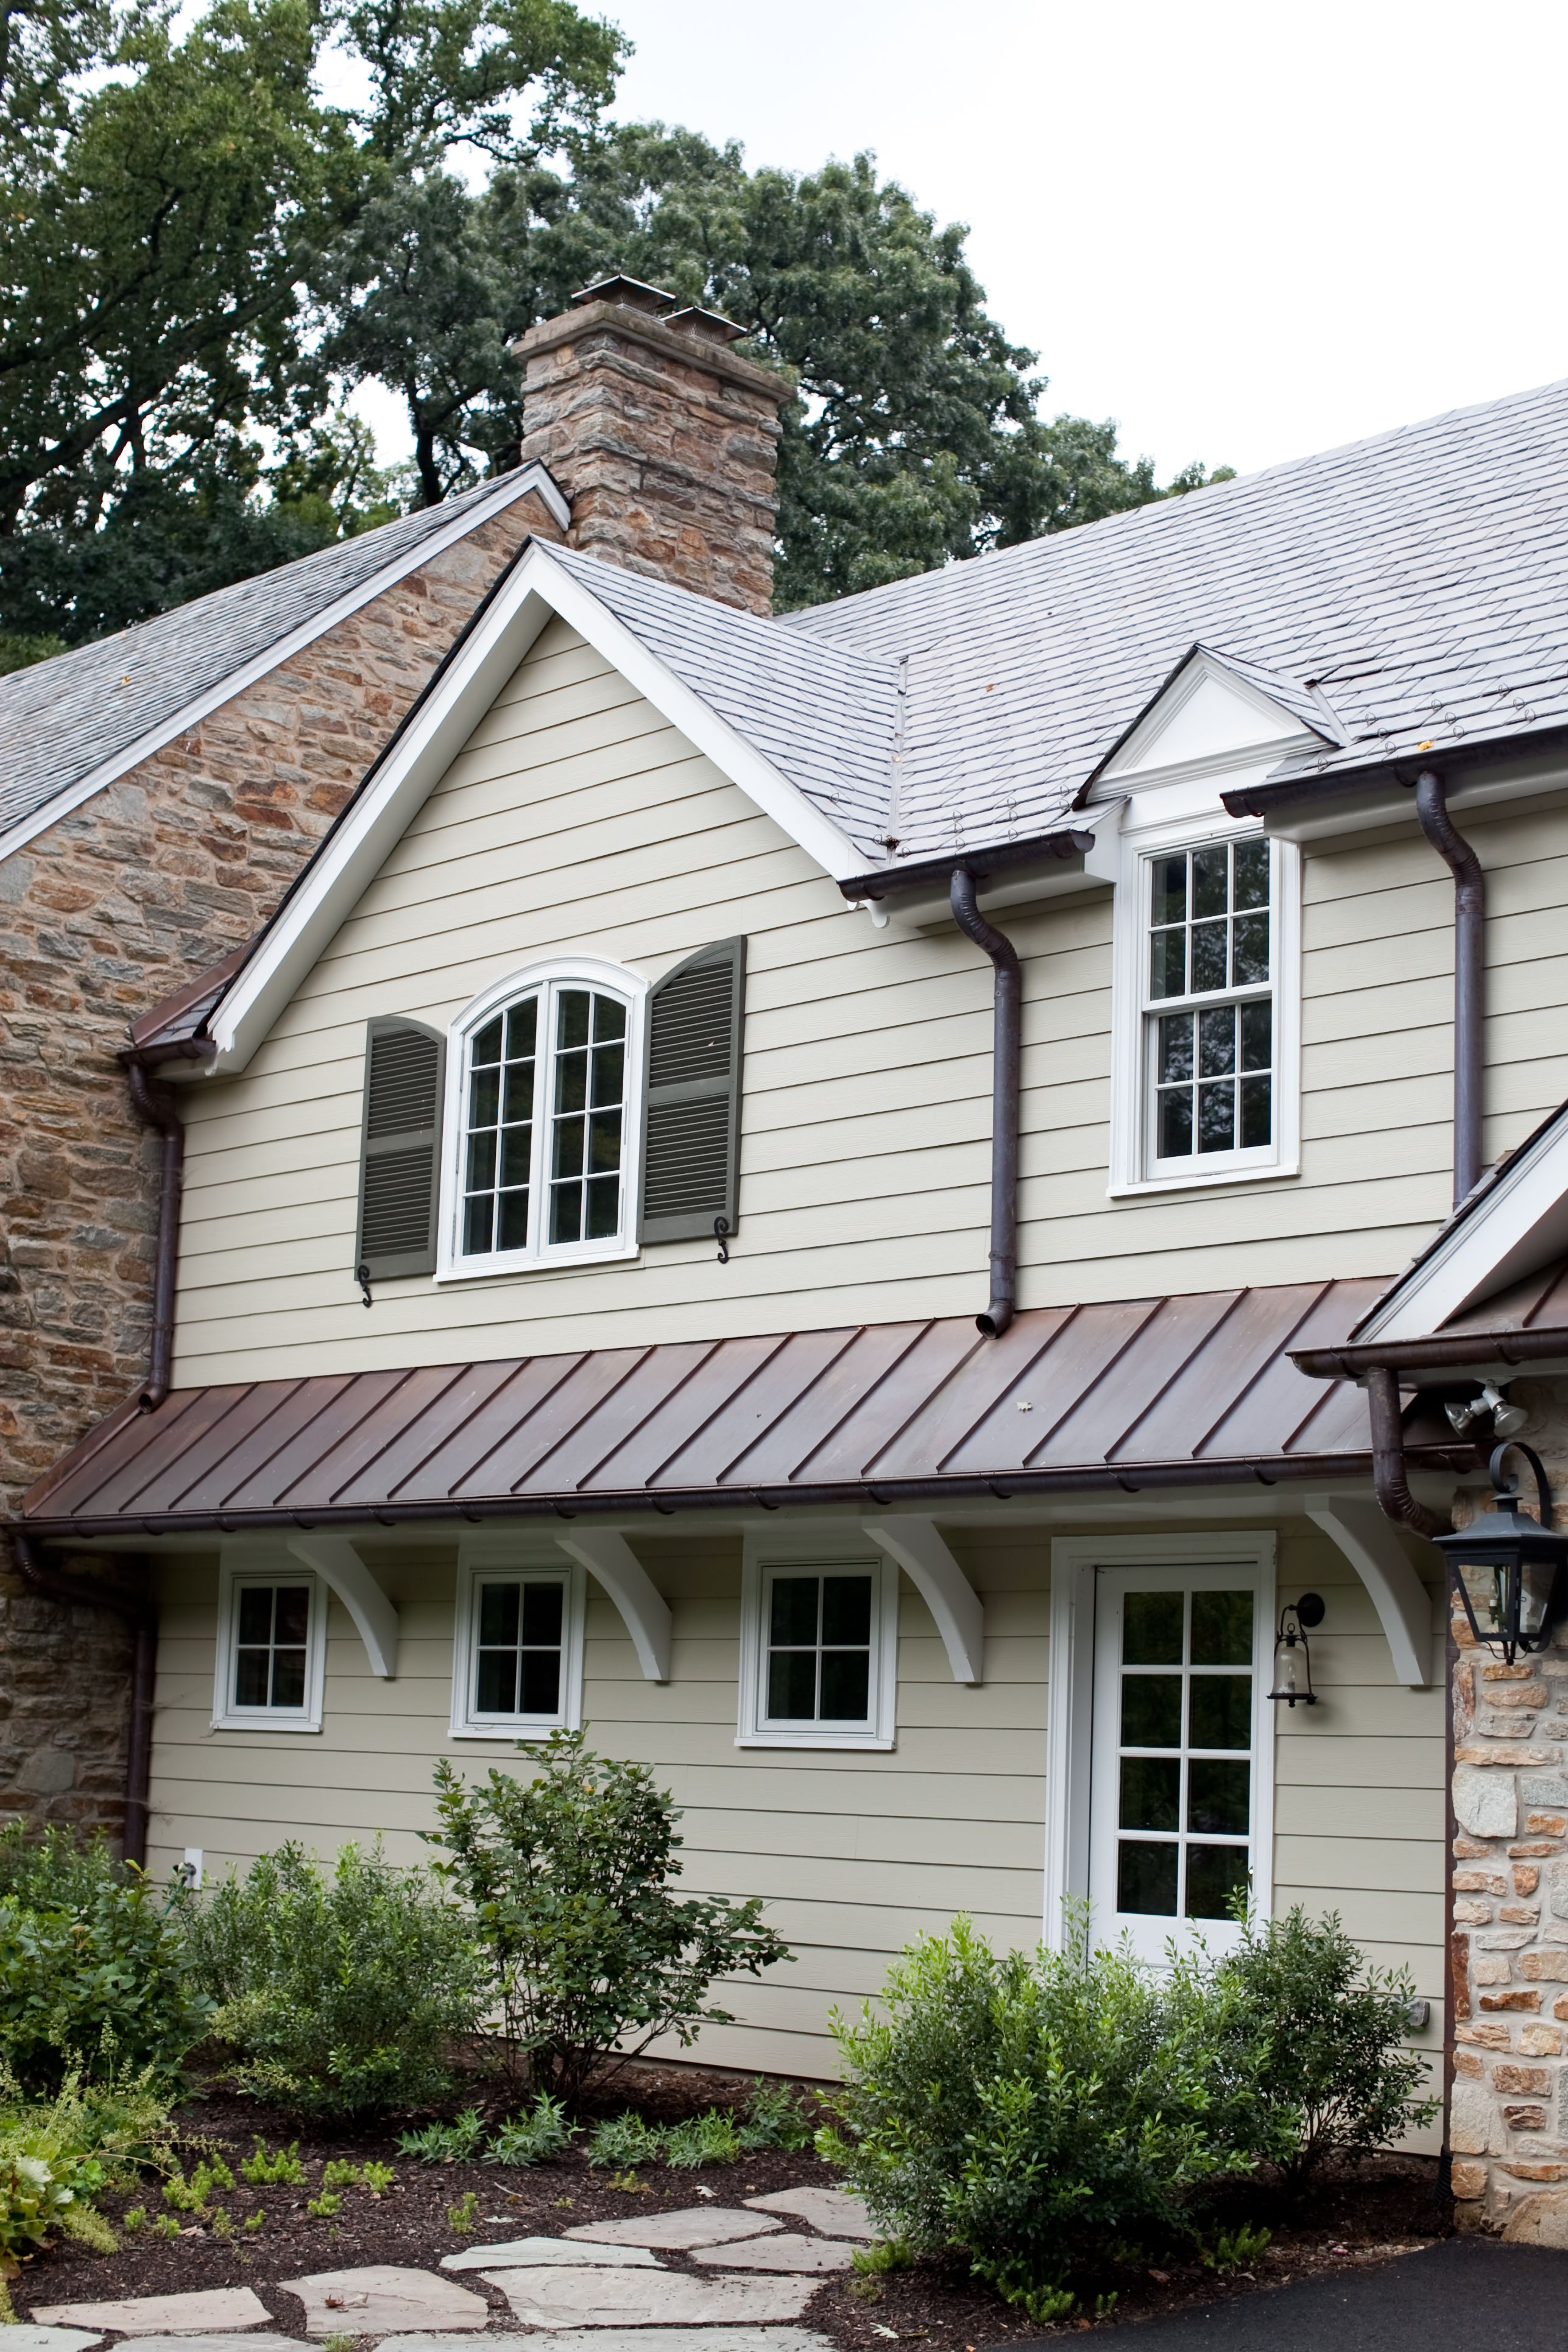 Dark Copper Roof House Exterior Architecture Details Copper Roof